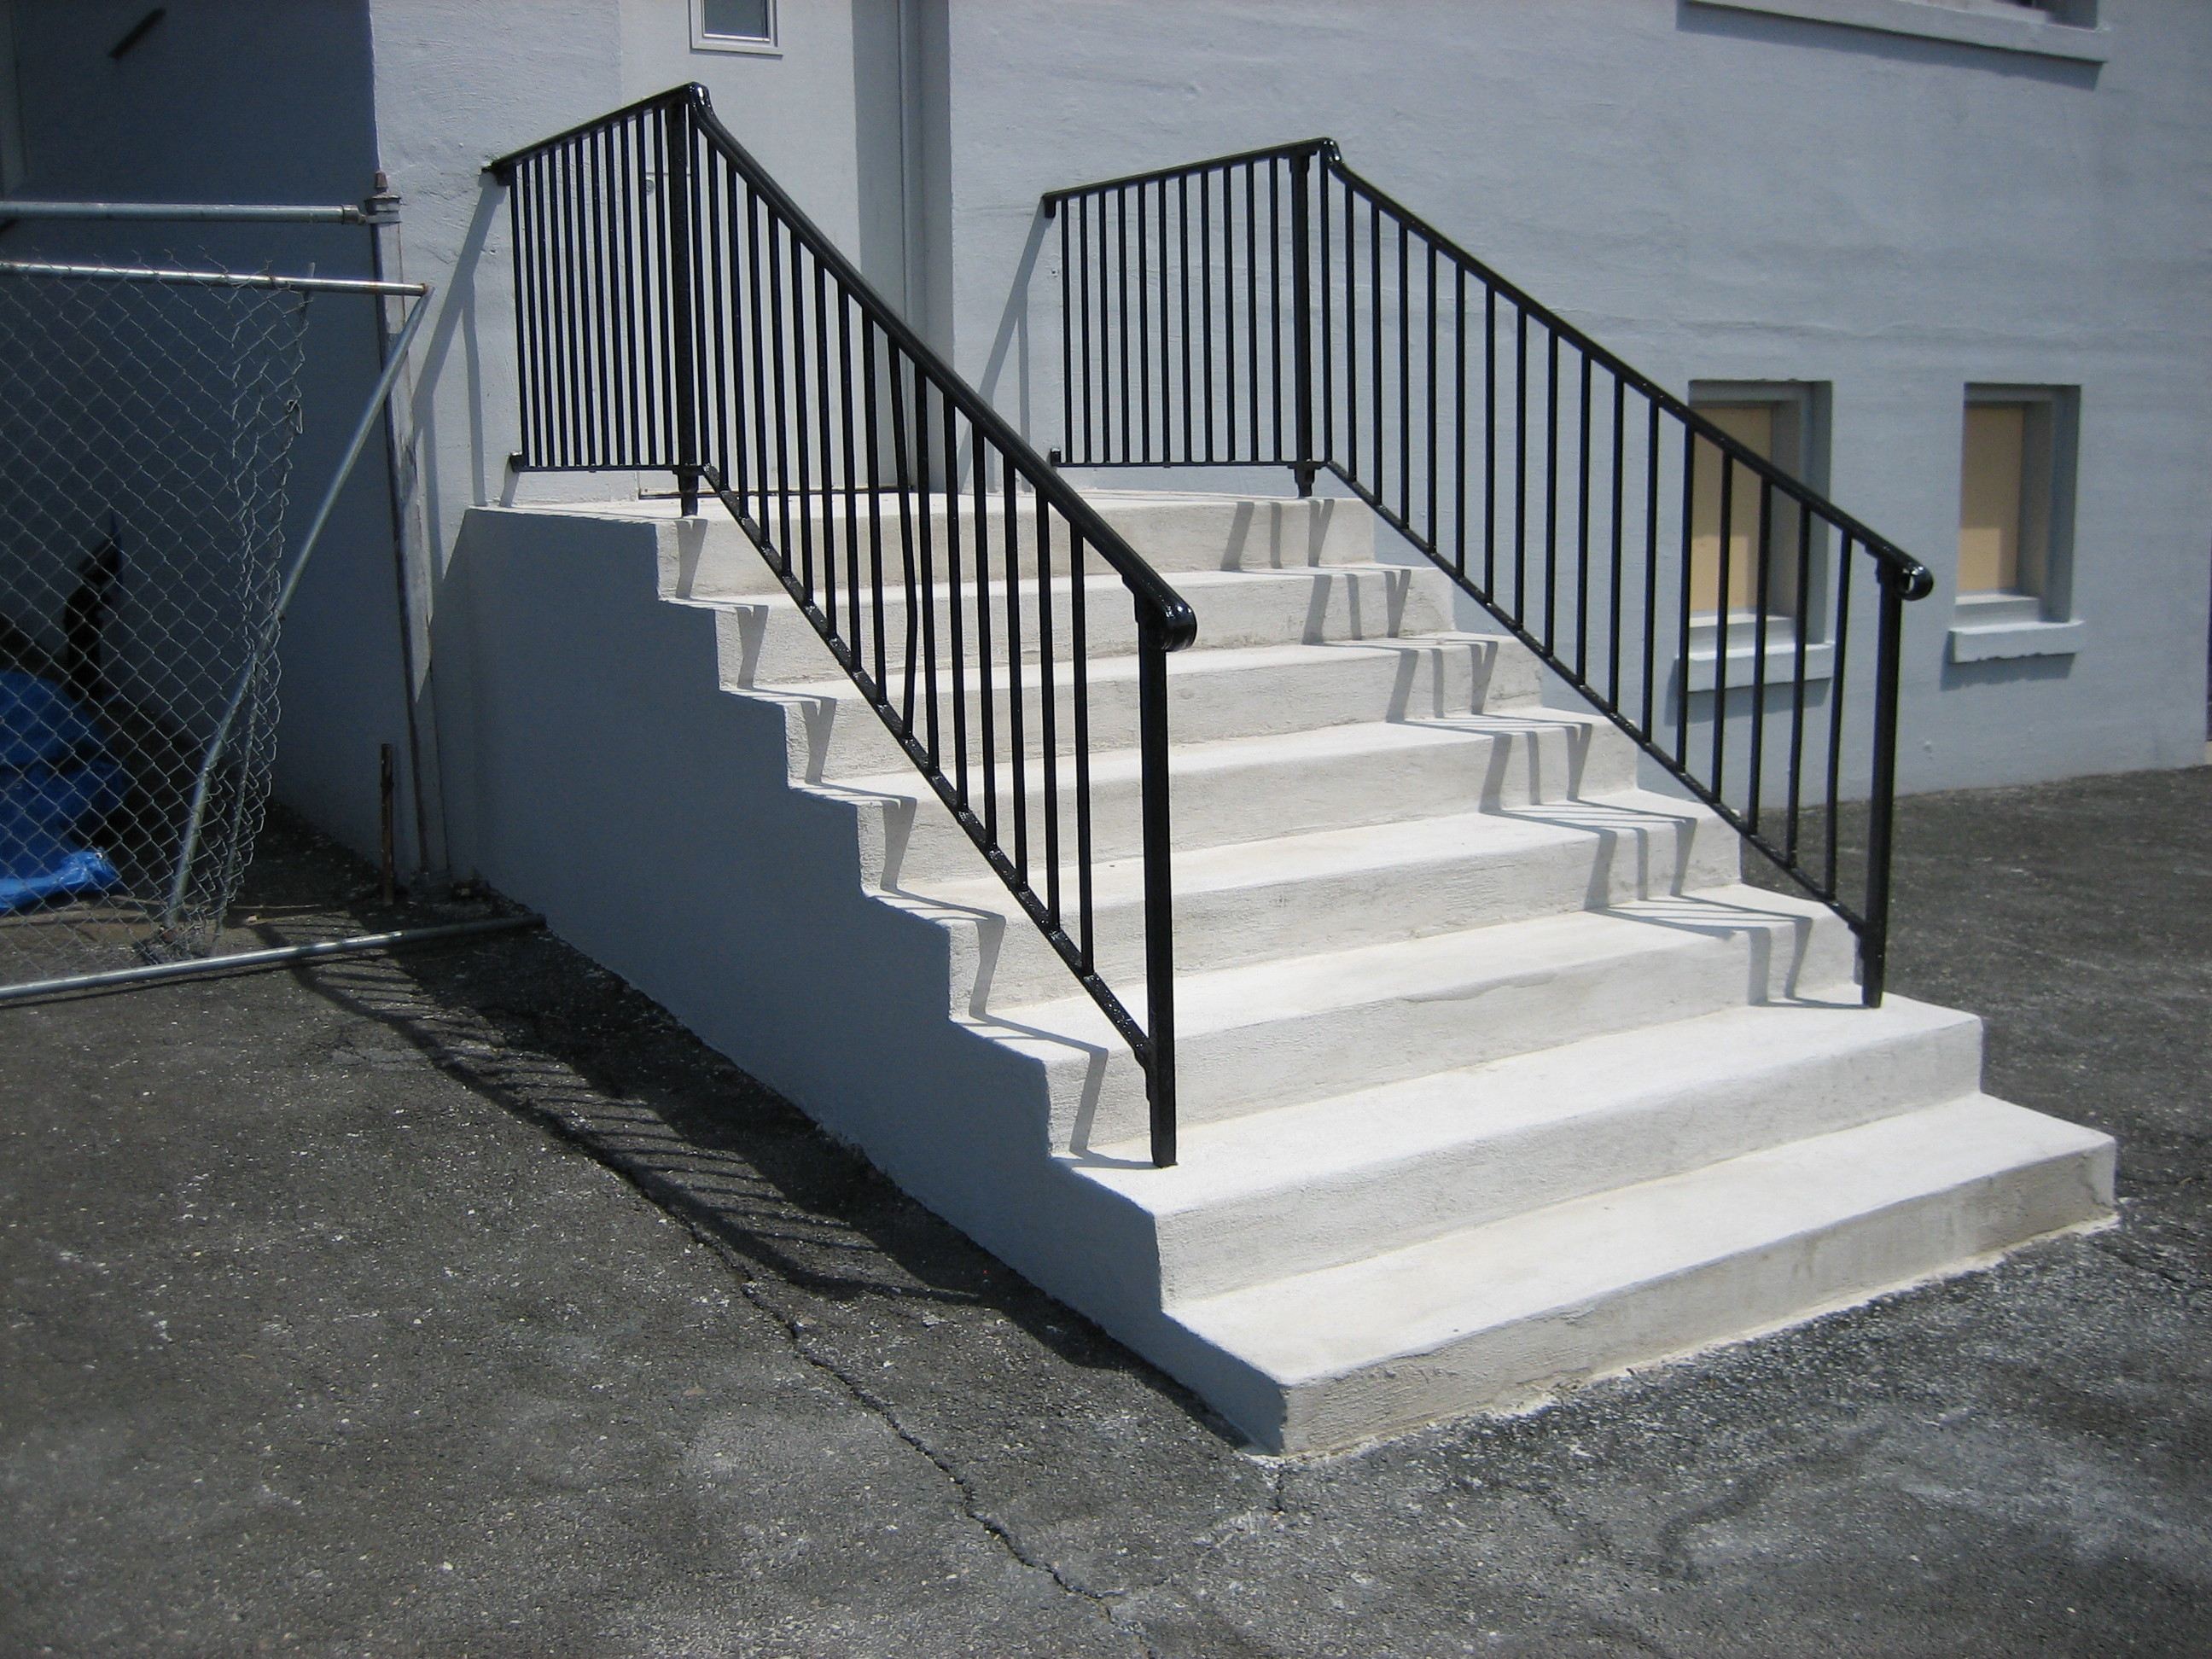 Stairway Update Armor Tite Construction Corp